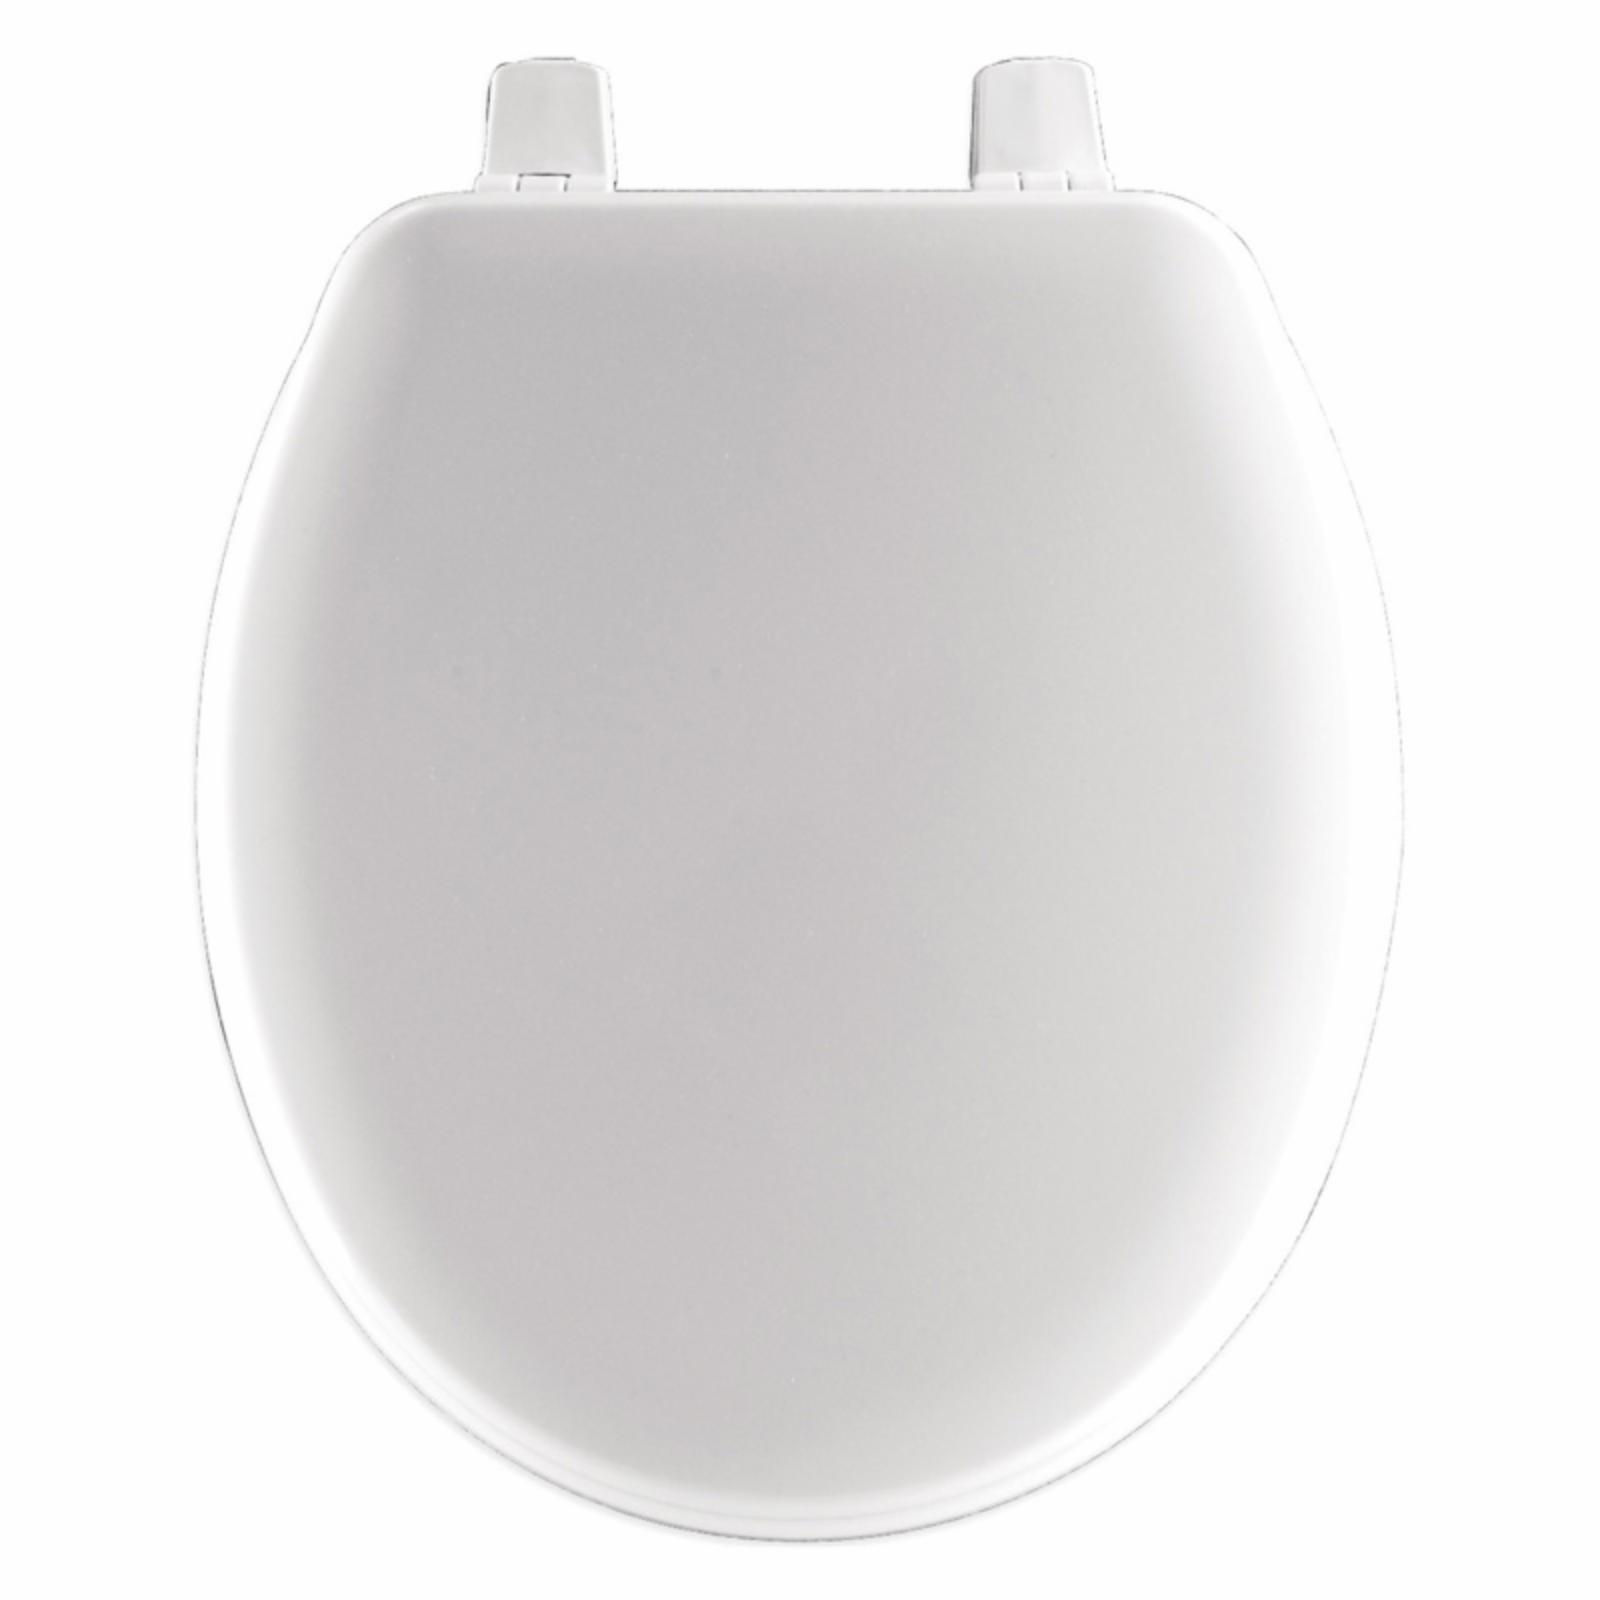 bemis toilet seat with child seat. Bemis BBB540000 Primary Closed Front Child Toilet Seat In  Toilet Seat Child Plumbing Fixtures Compare Prices At Nextag